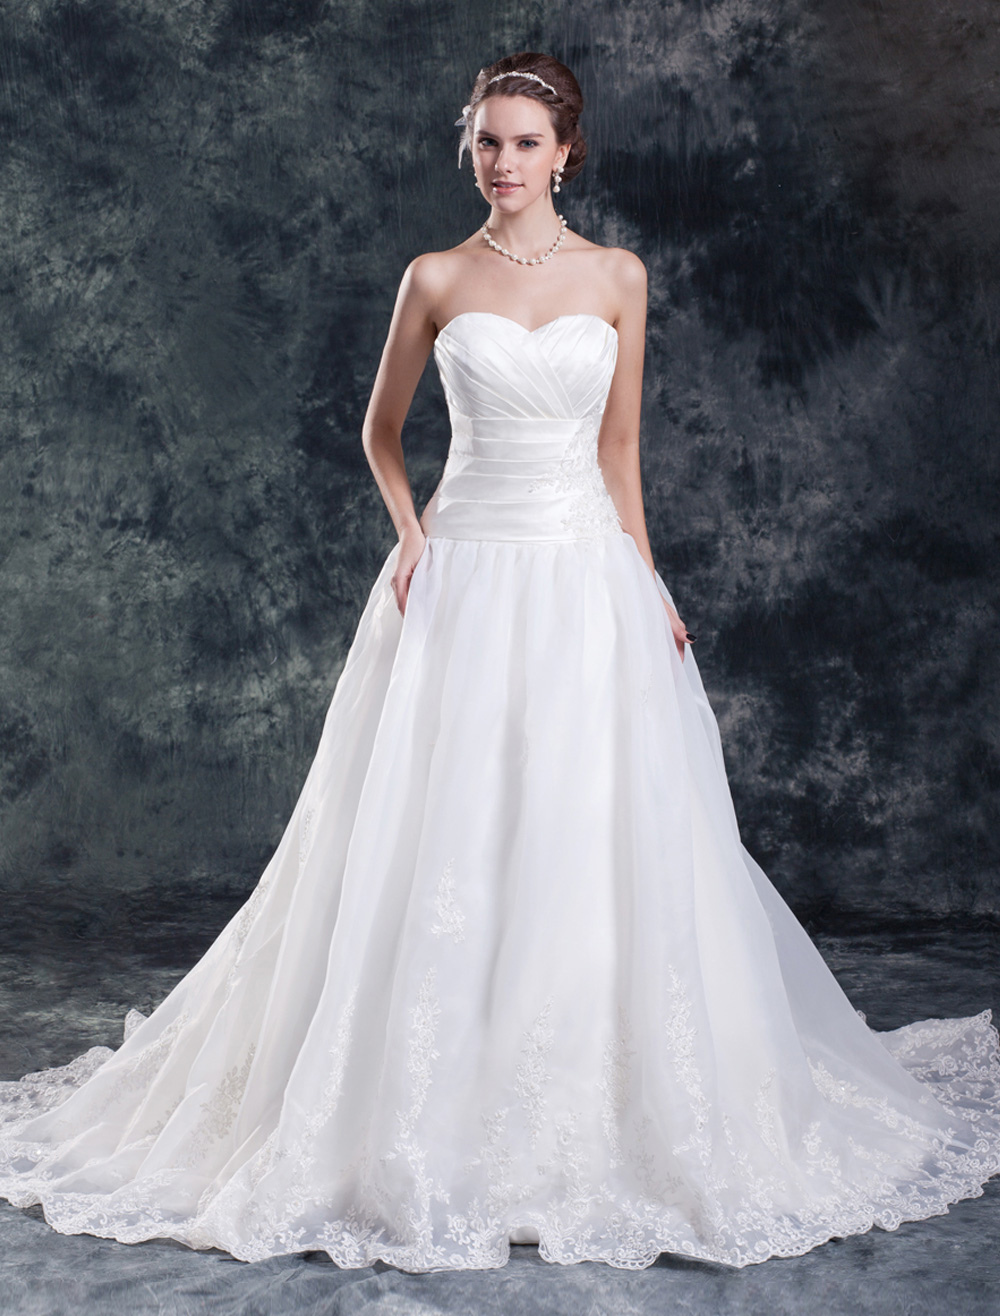 Chic A-line Sweetheart Neck Ruched Satin Ivory Bridal Wedding Dress